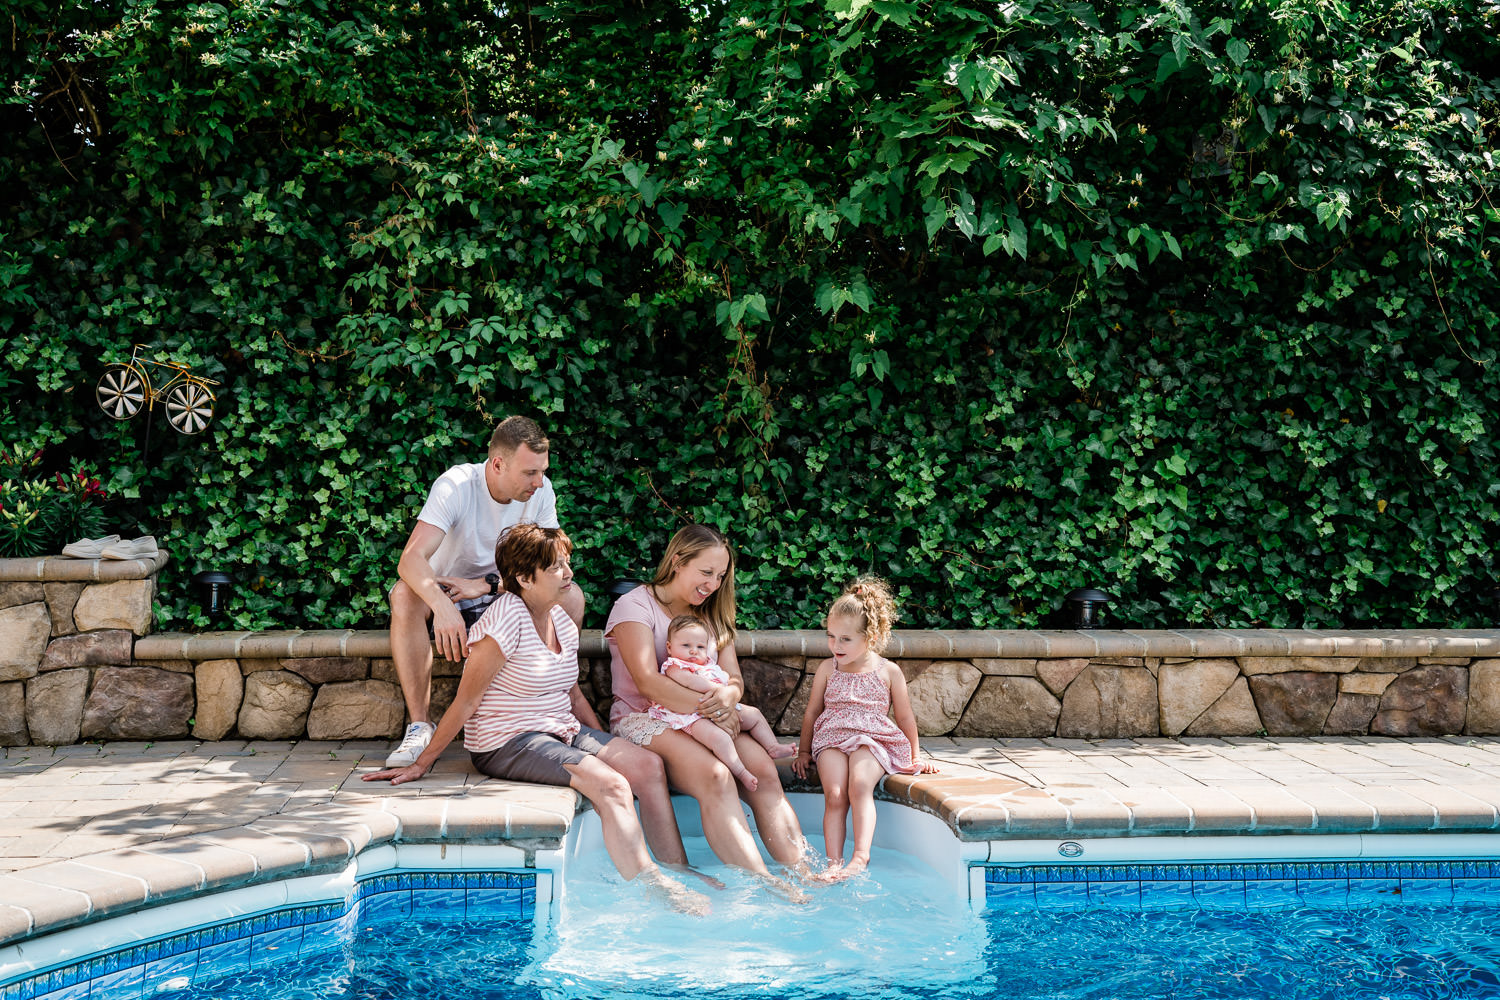 A family gathers around the pool.